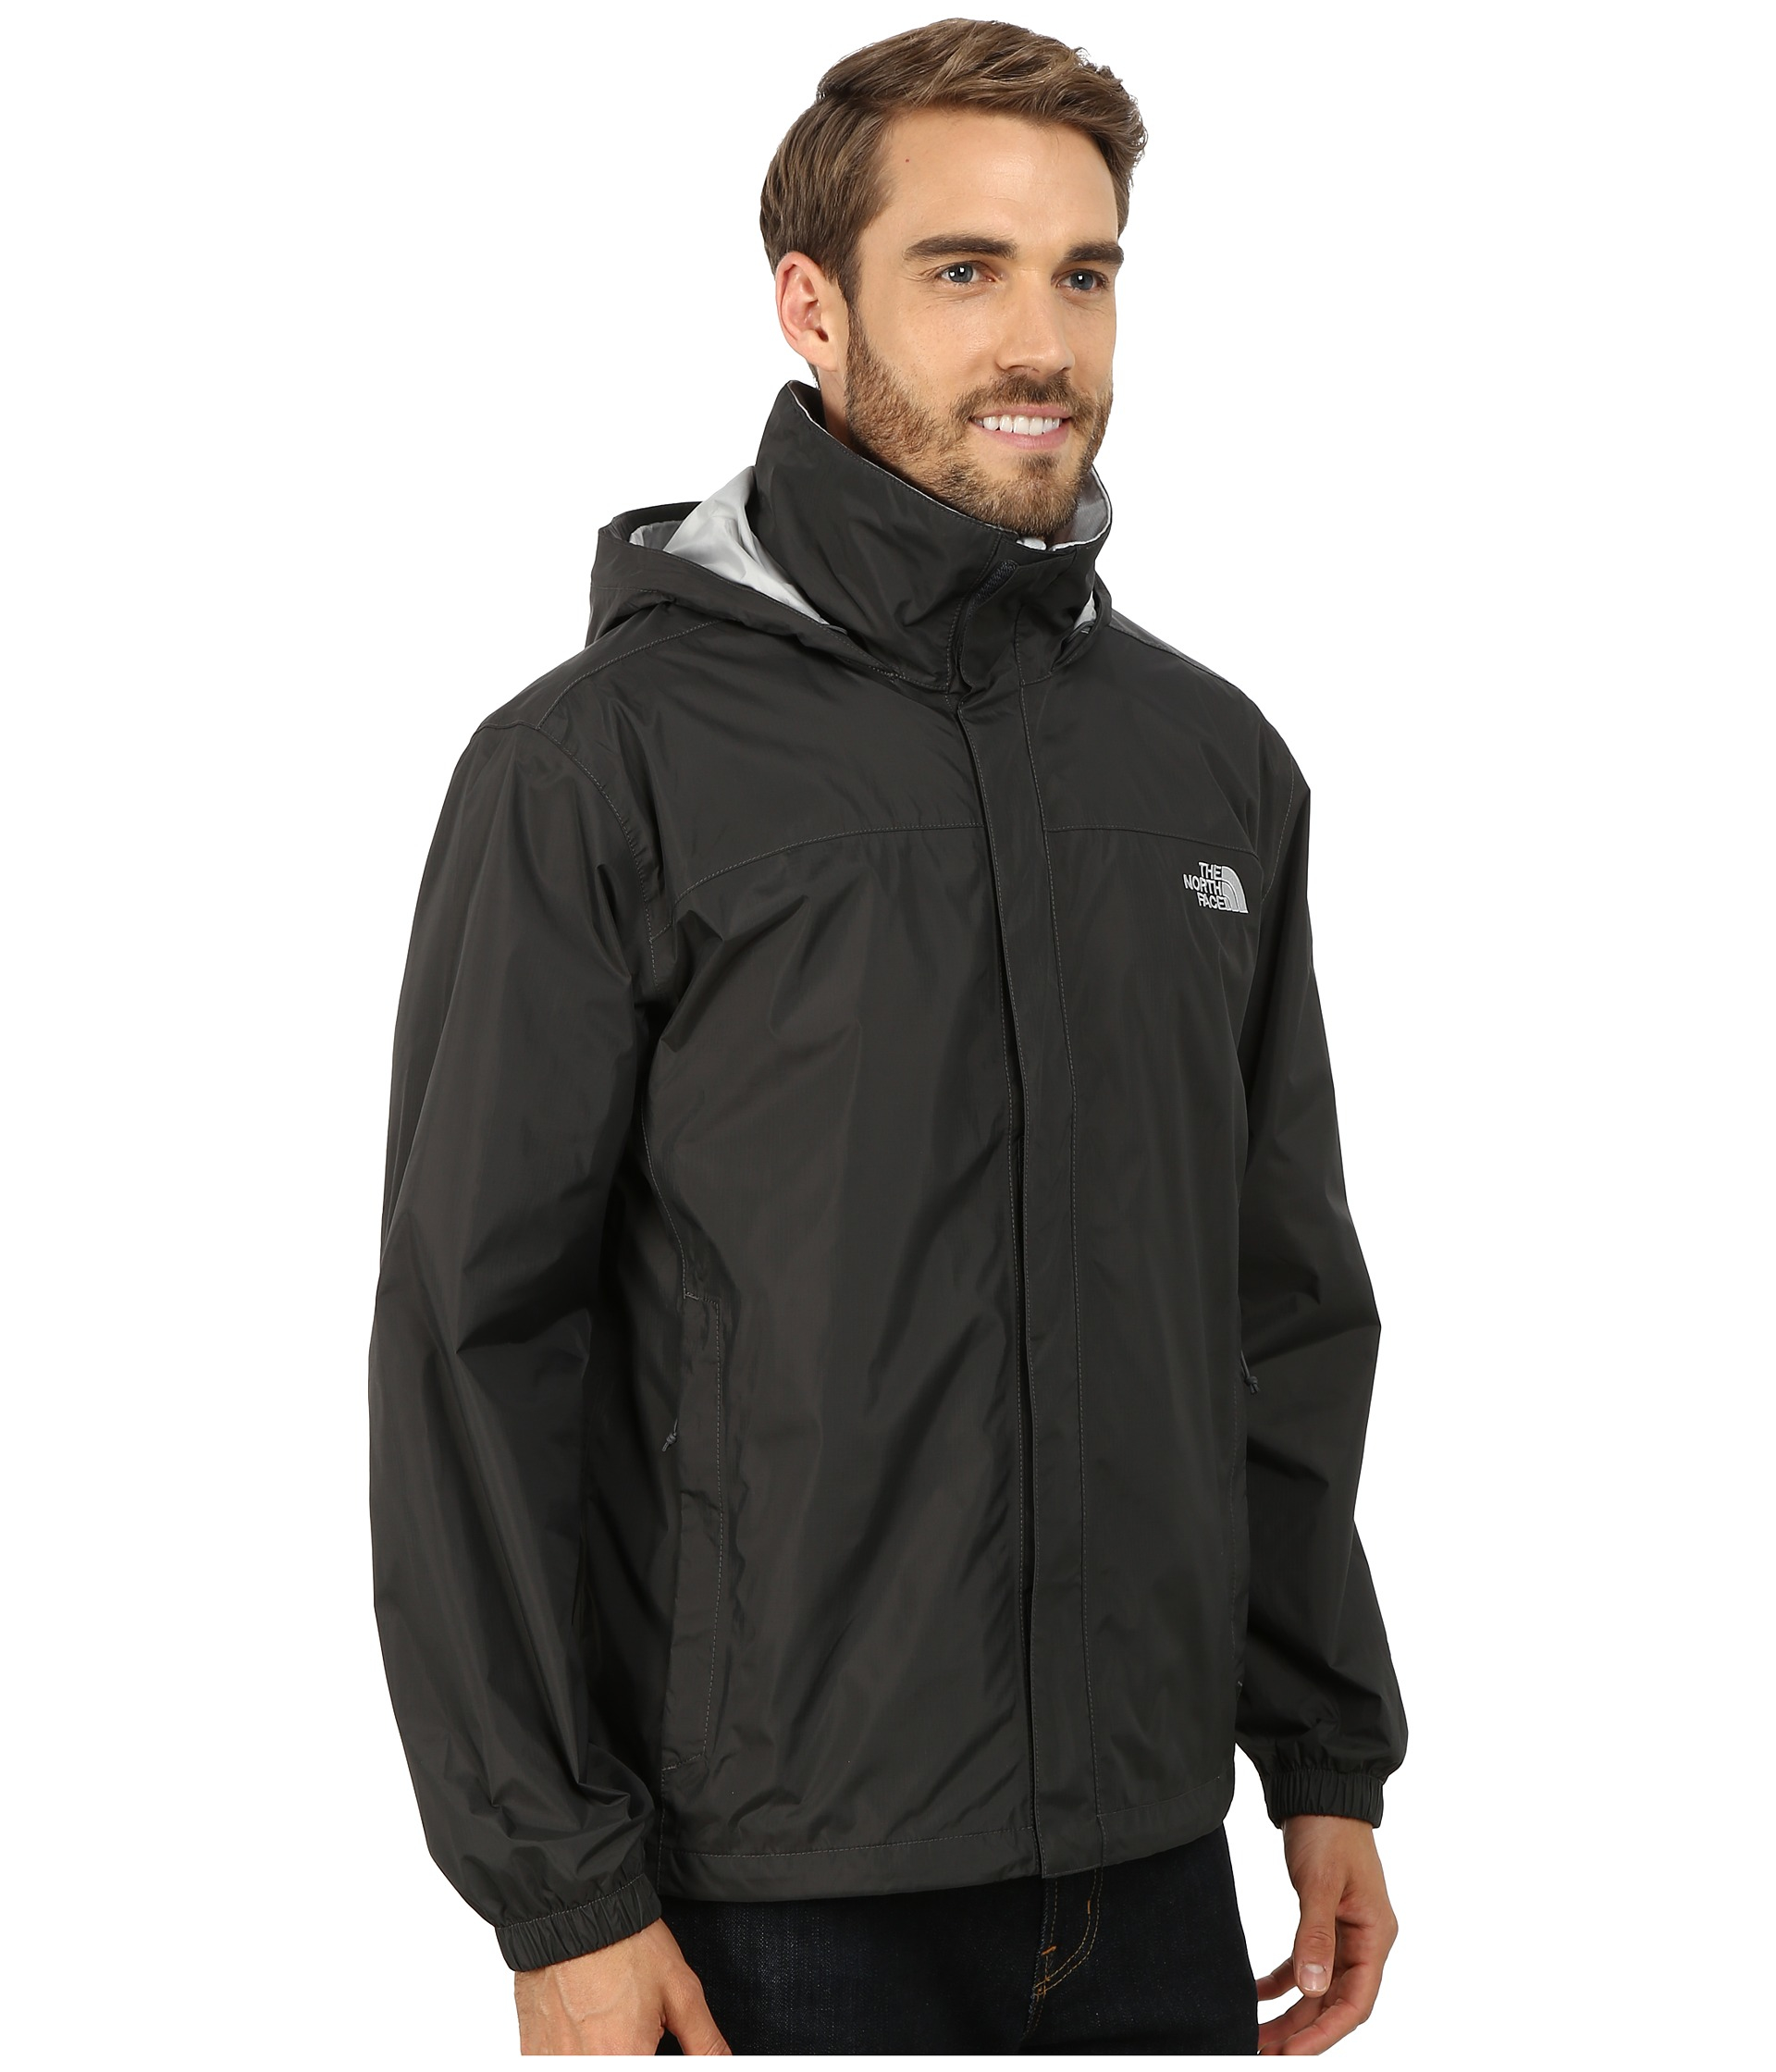 4c7dadfc683d clearance lyst the north face resolve jacket in black for men 61233 1416e